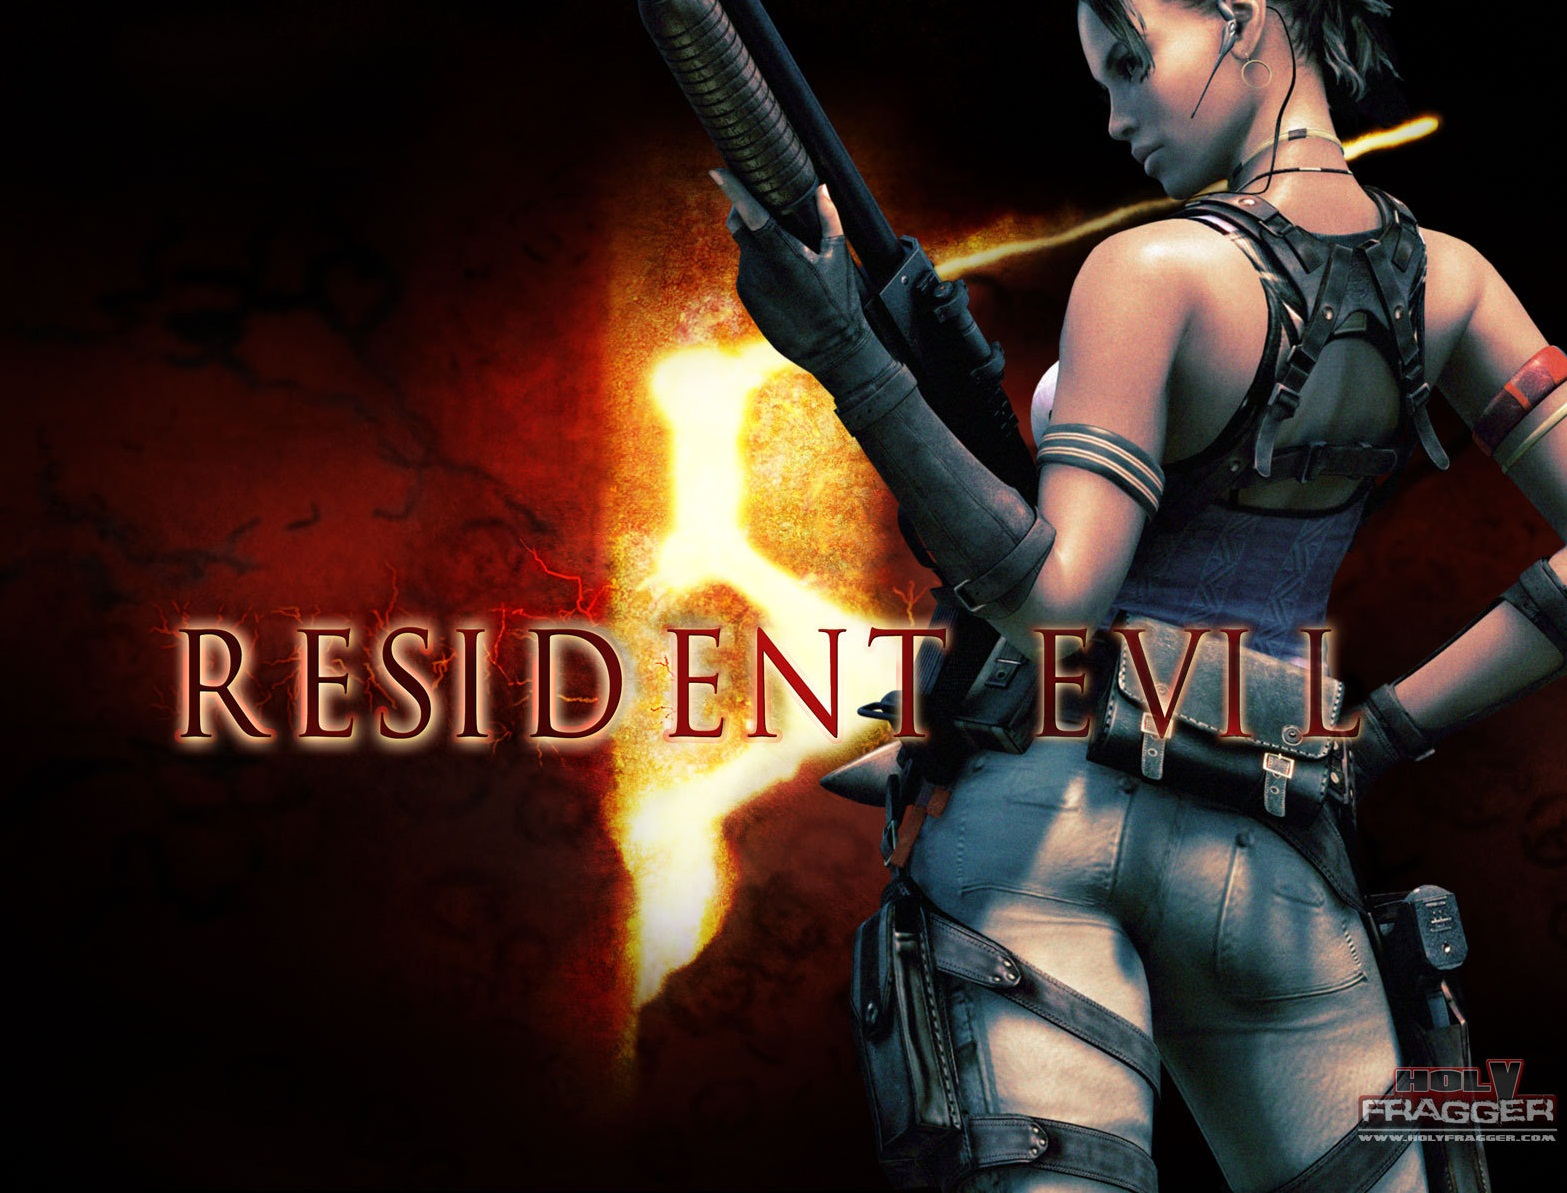 Resident Evil 4 PC Game Features